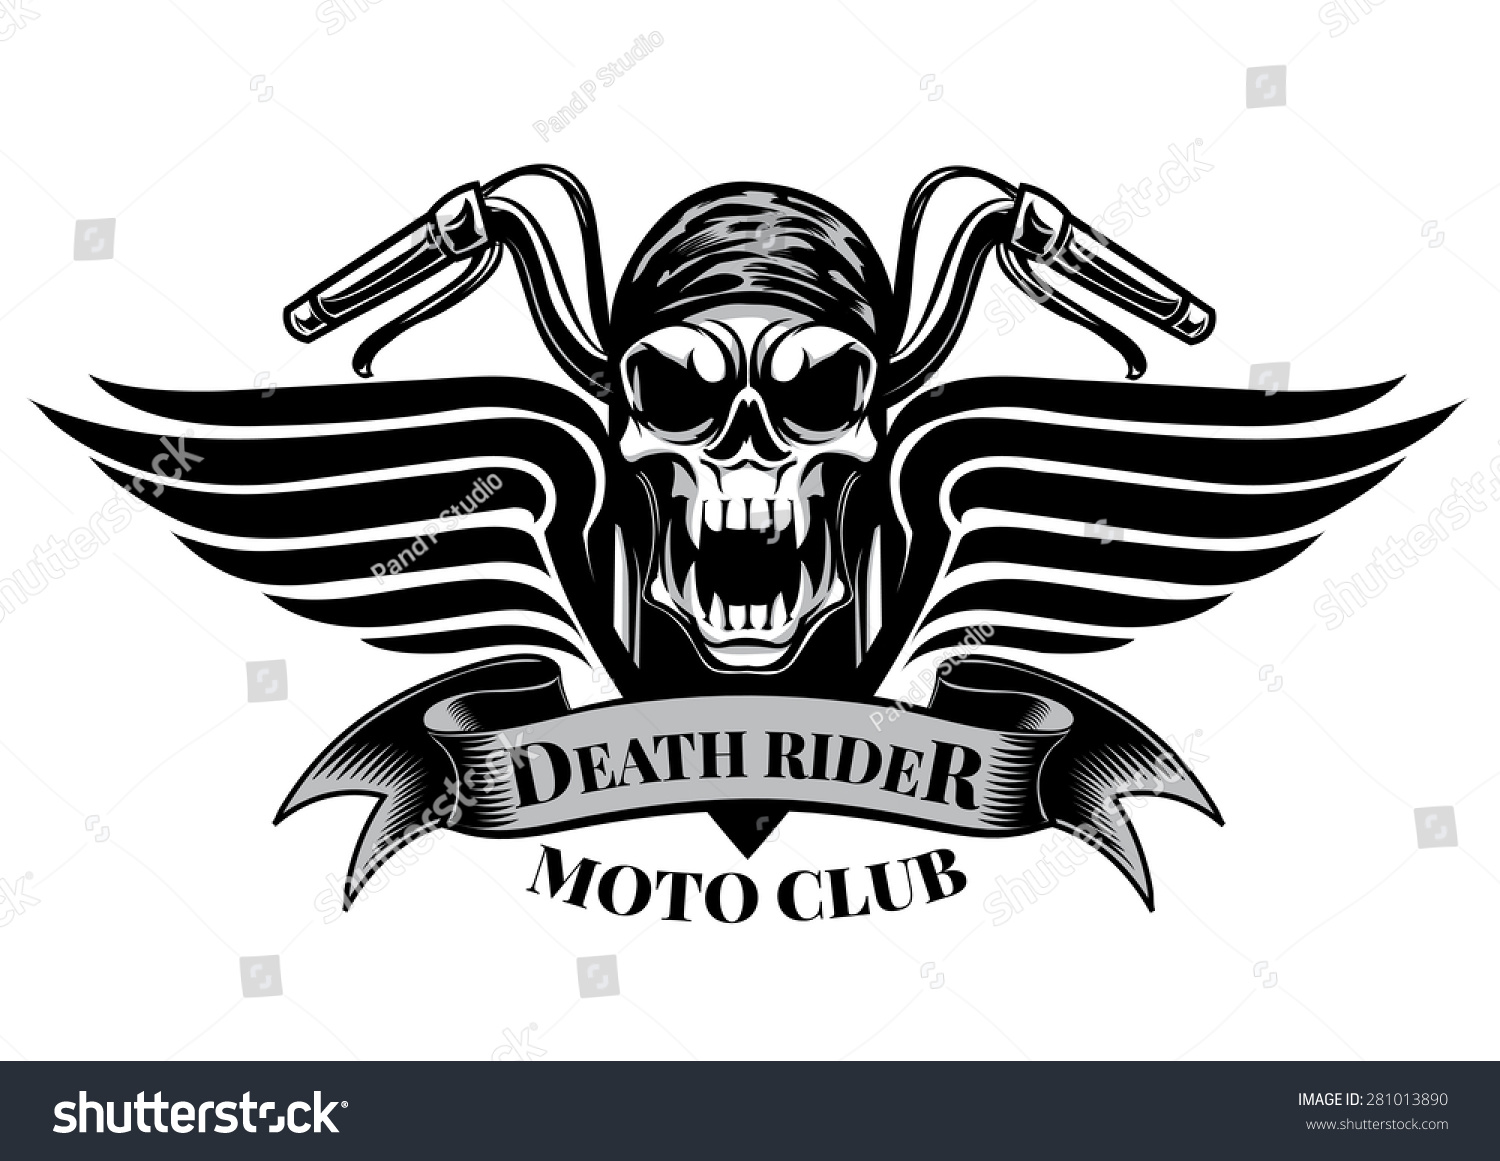 Design a bike sticker - Motor Racing Skulls Graphic Design Logo Sticker Label Arm